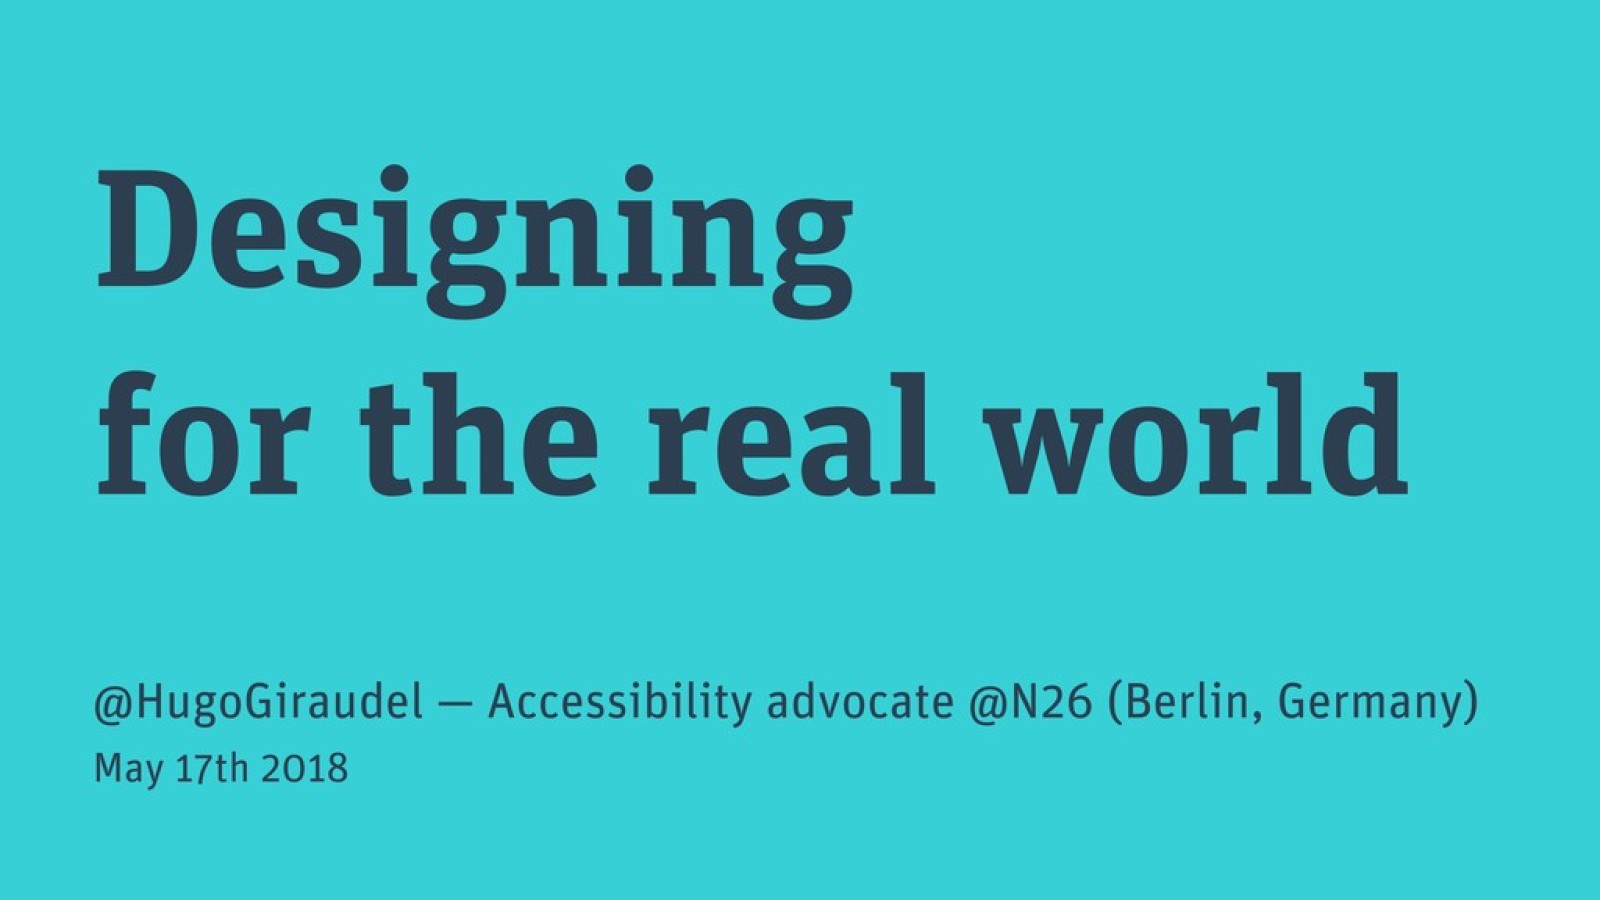 Designing for the real world